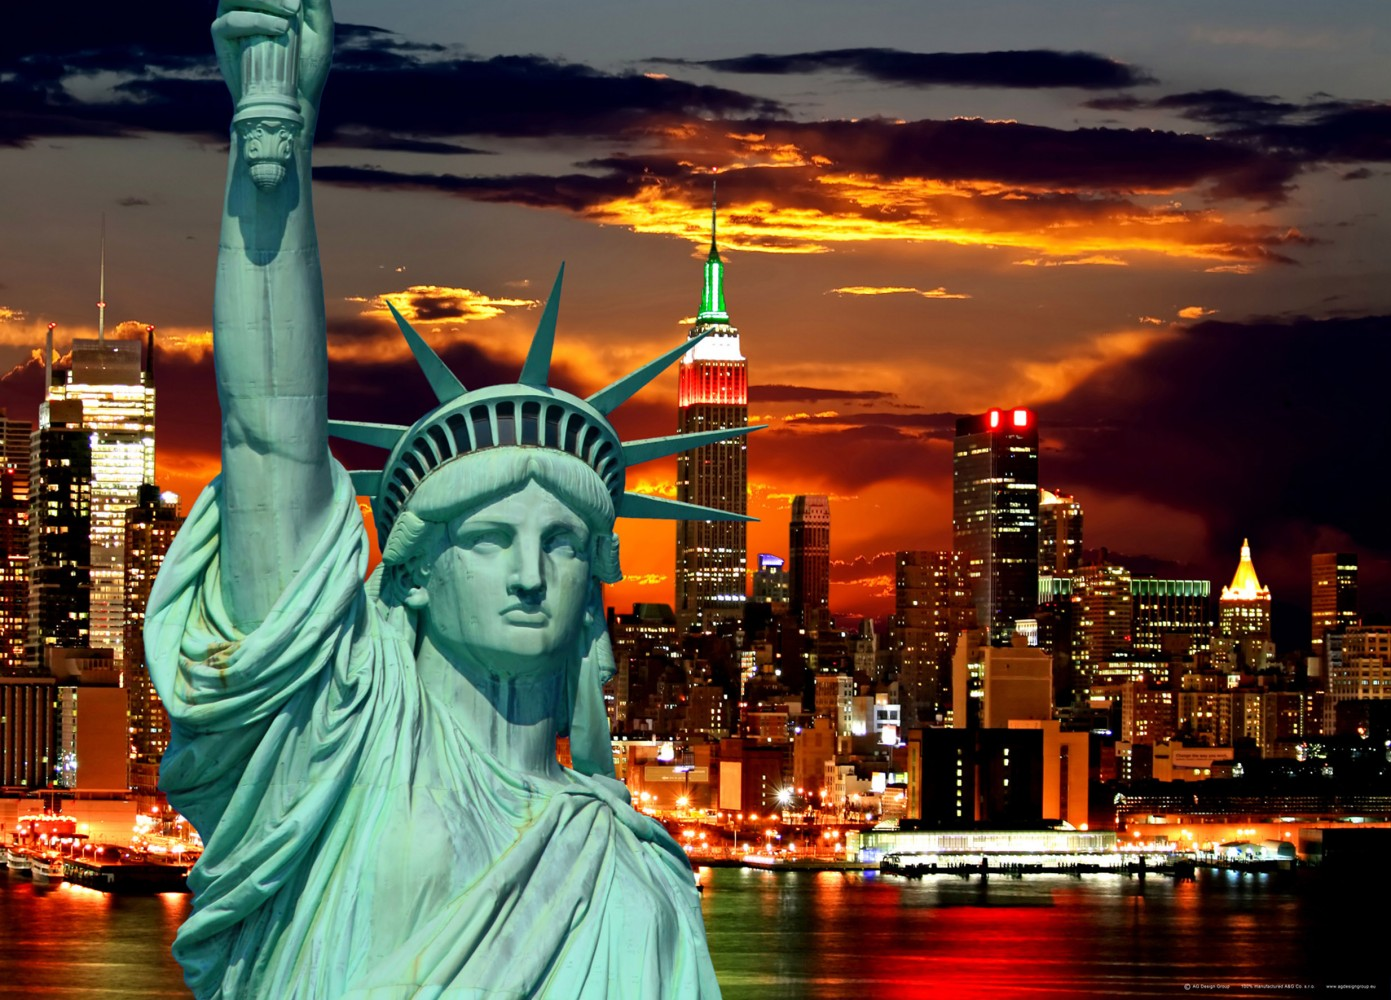 xxl poster fototapete tapete freiheitsstatue new york skyline foto 160 x 115 cm ebay. Black Bedroom Furniture Sets. Home Design Ideas